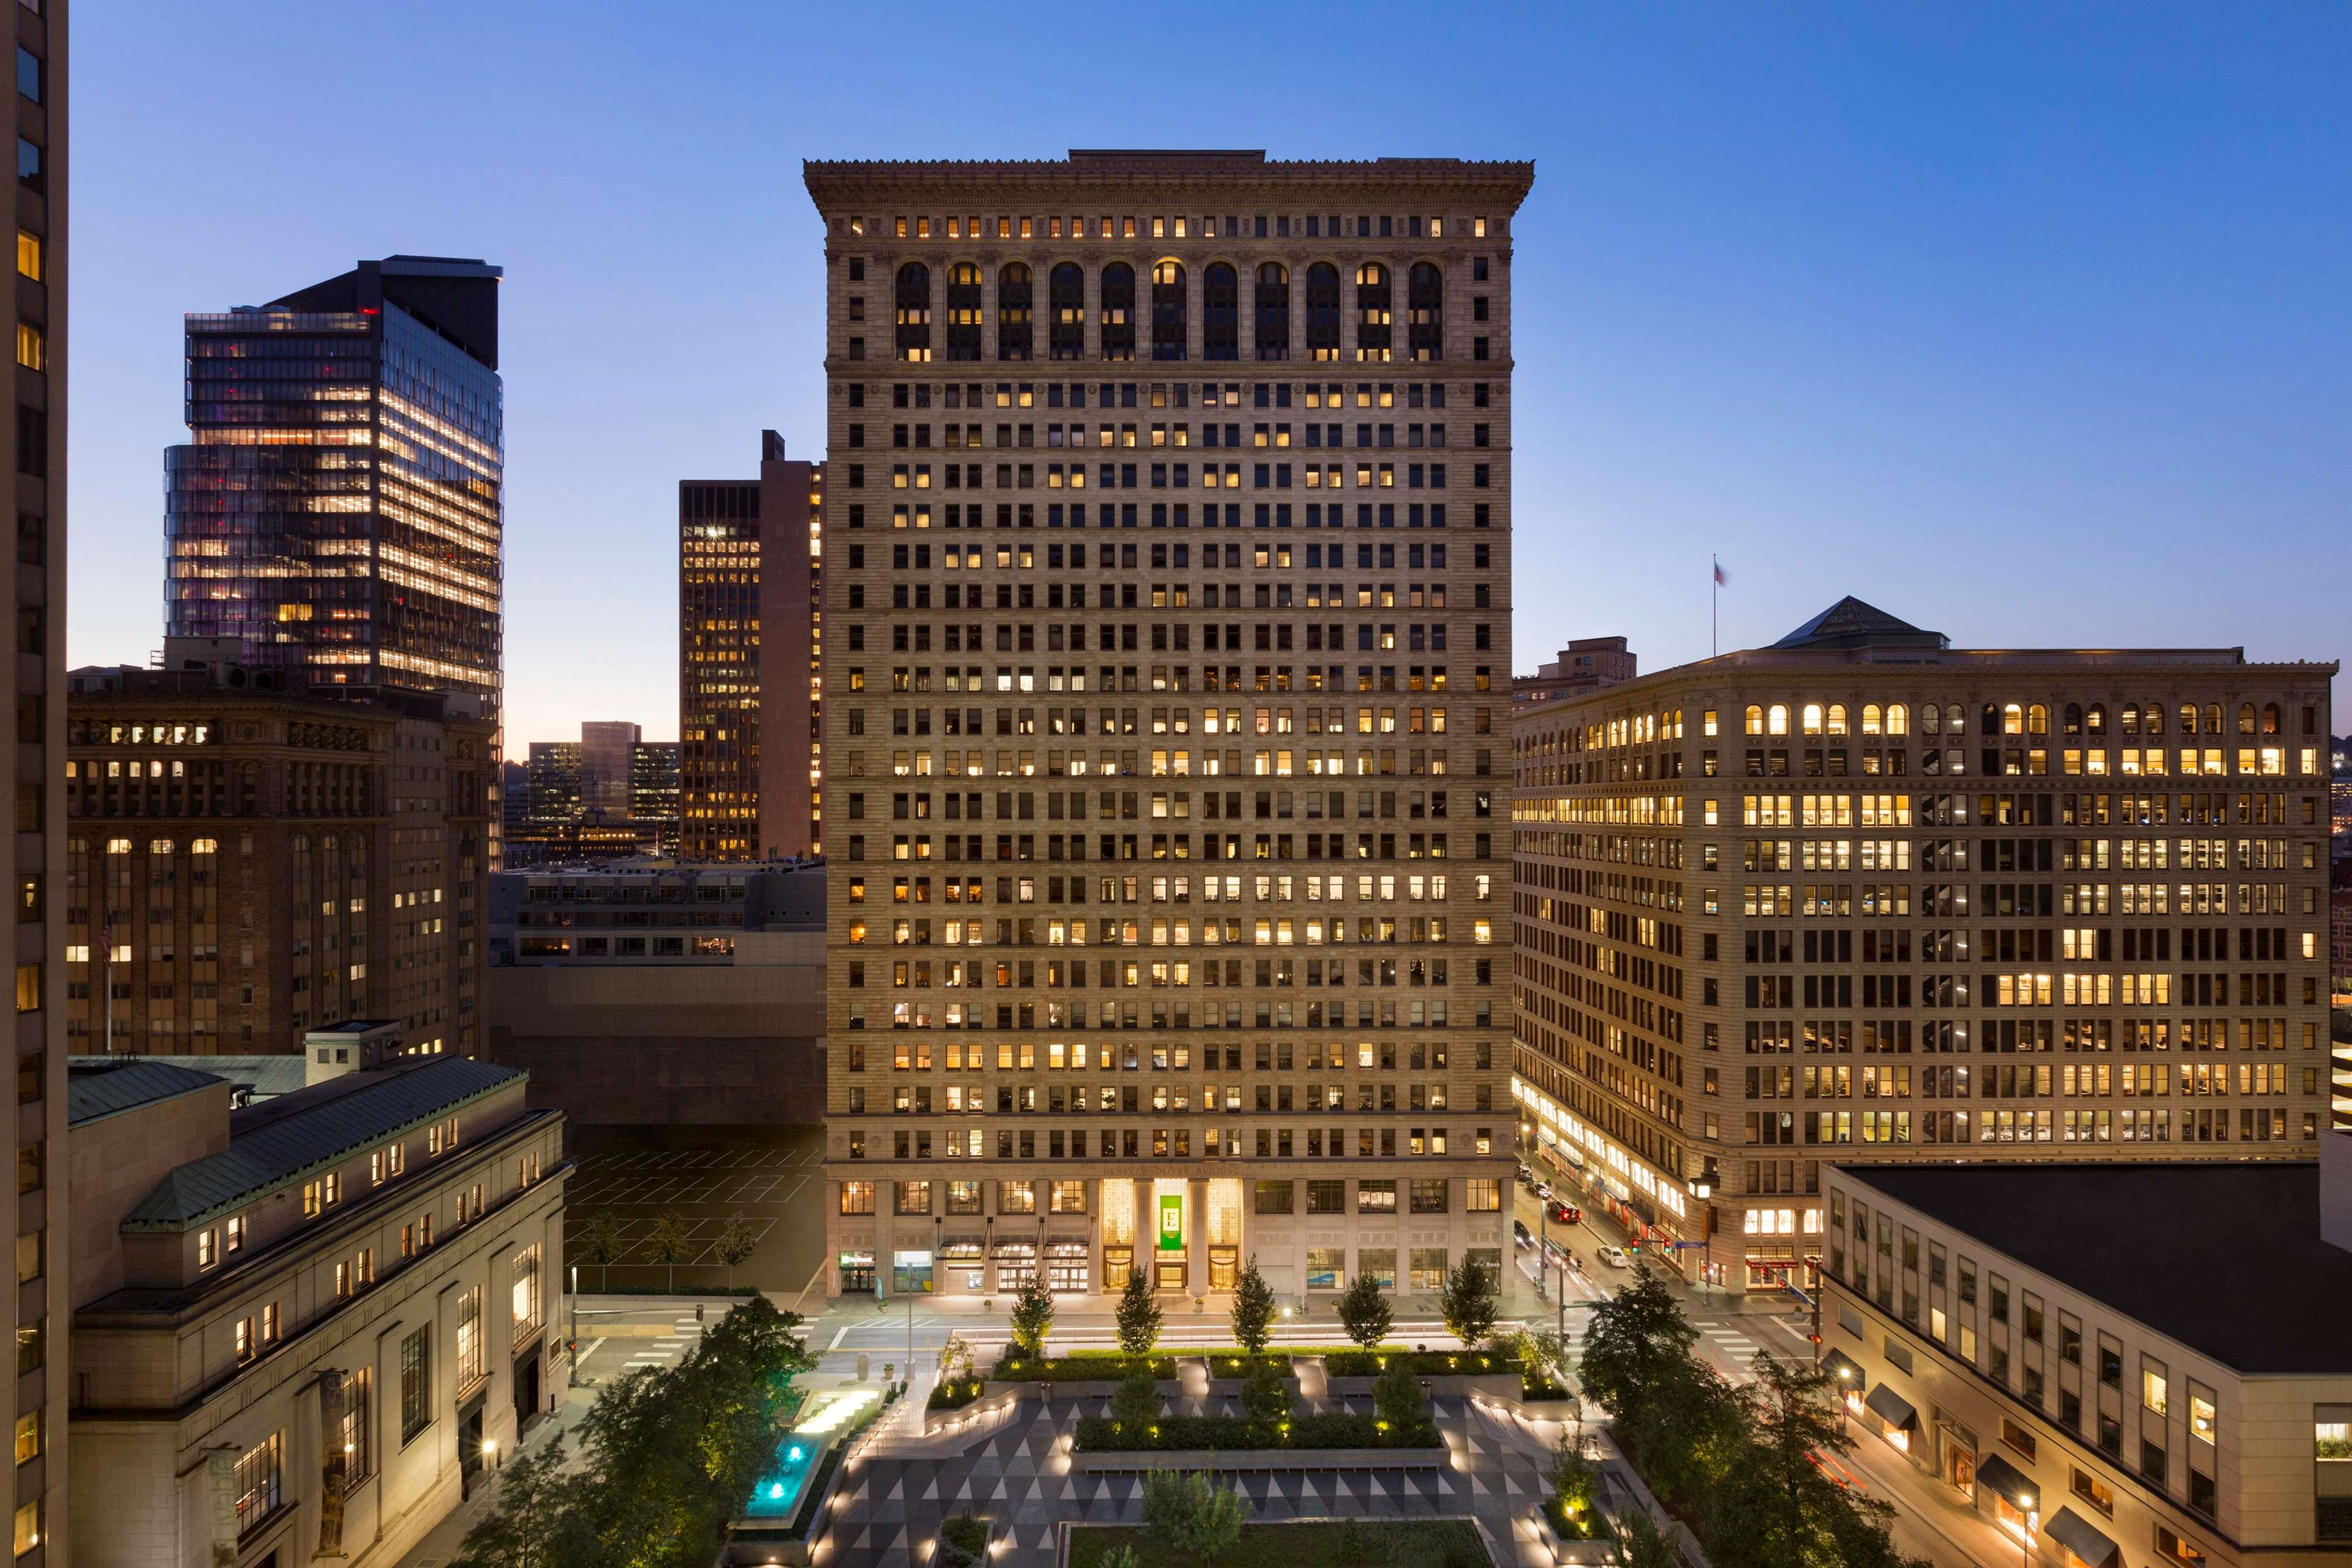 Embassy suites by hilton pittsburgh downtown pittsburgh pennsylvania pa for Hilton garden inn downtown pittsburgh